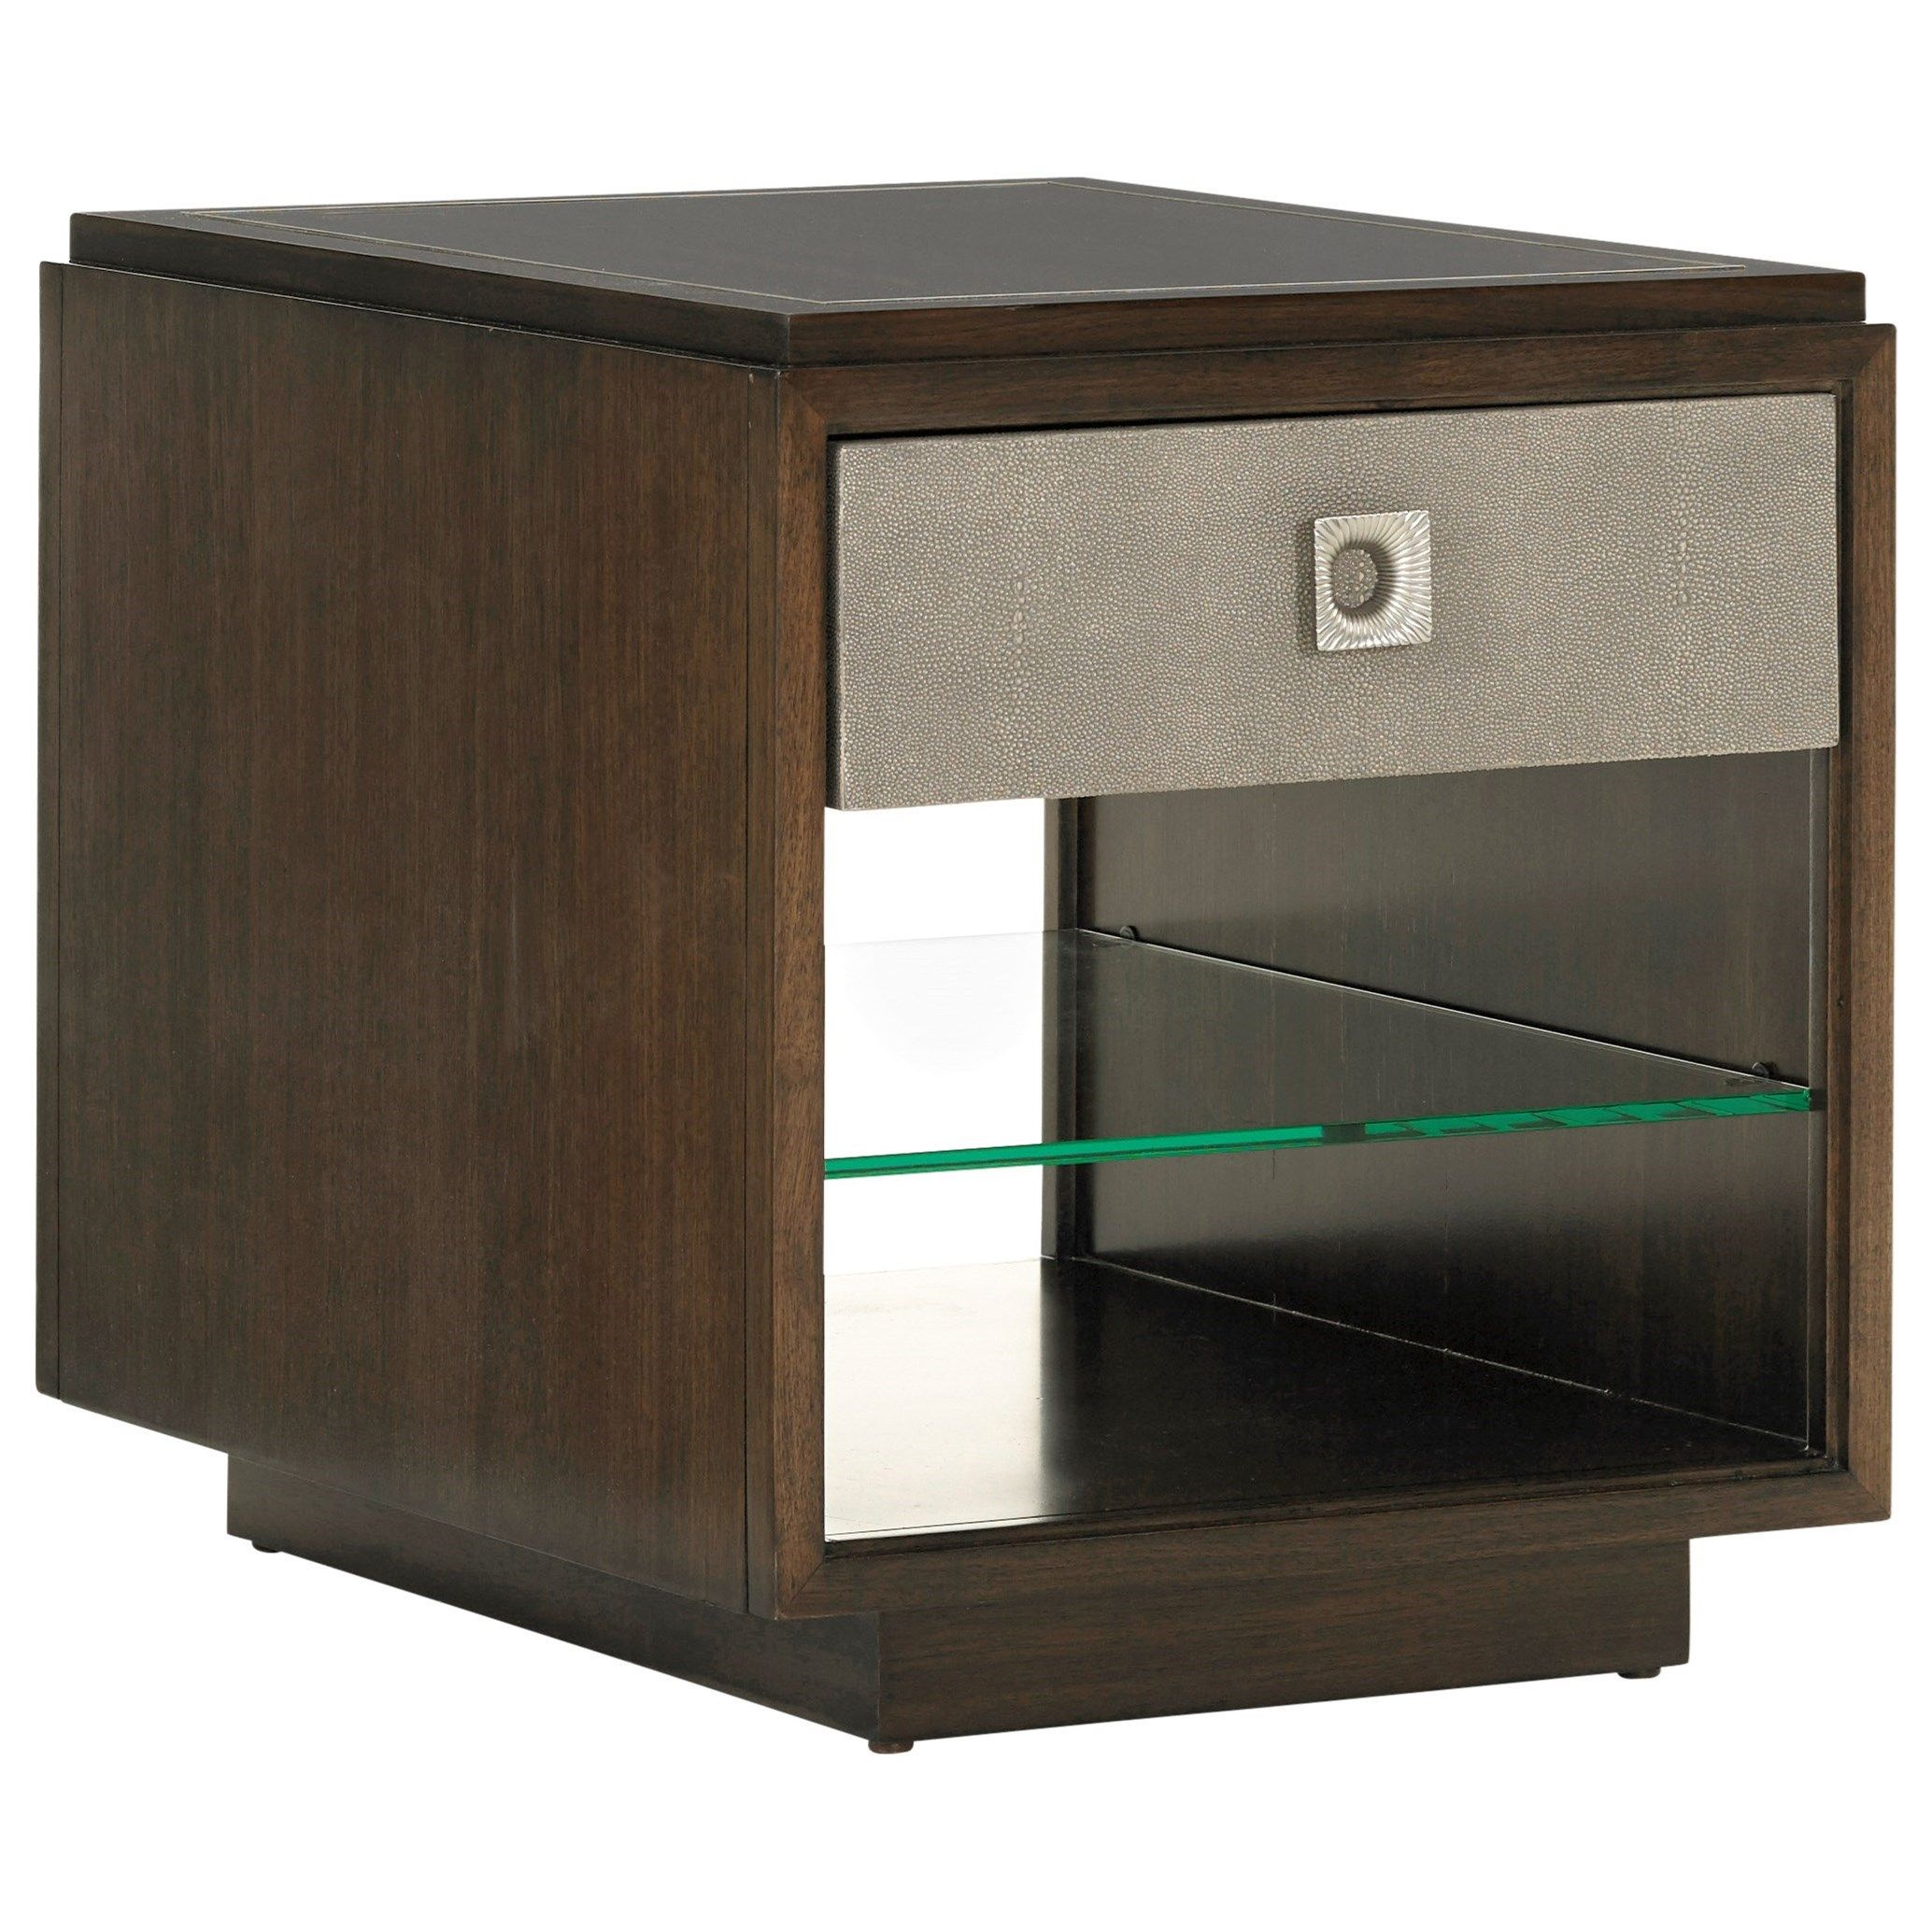 MacArthur Park Chenault Storage End Table by Lexington at Baer's Furniture